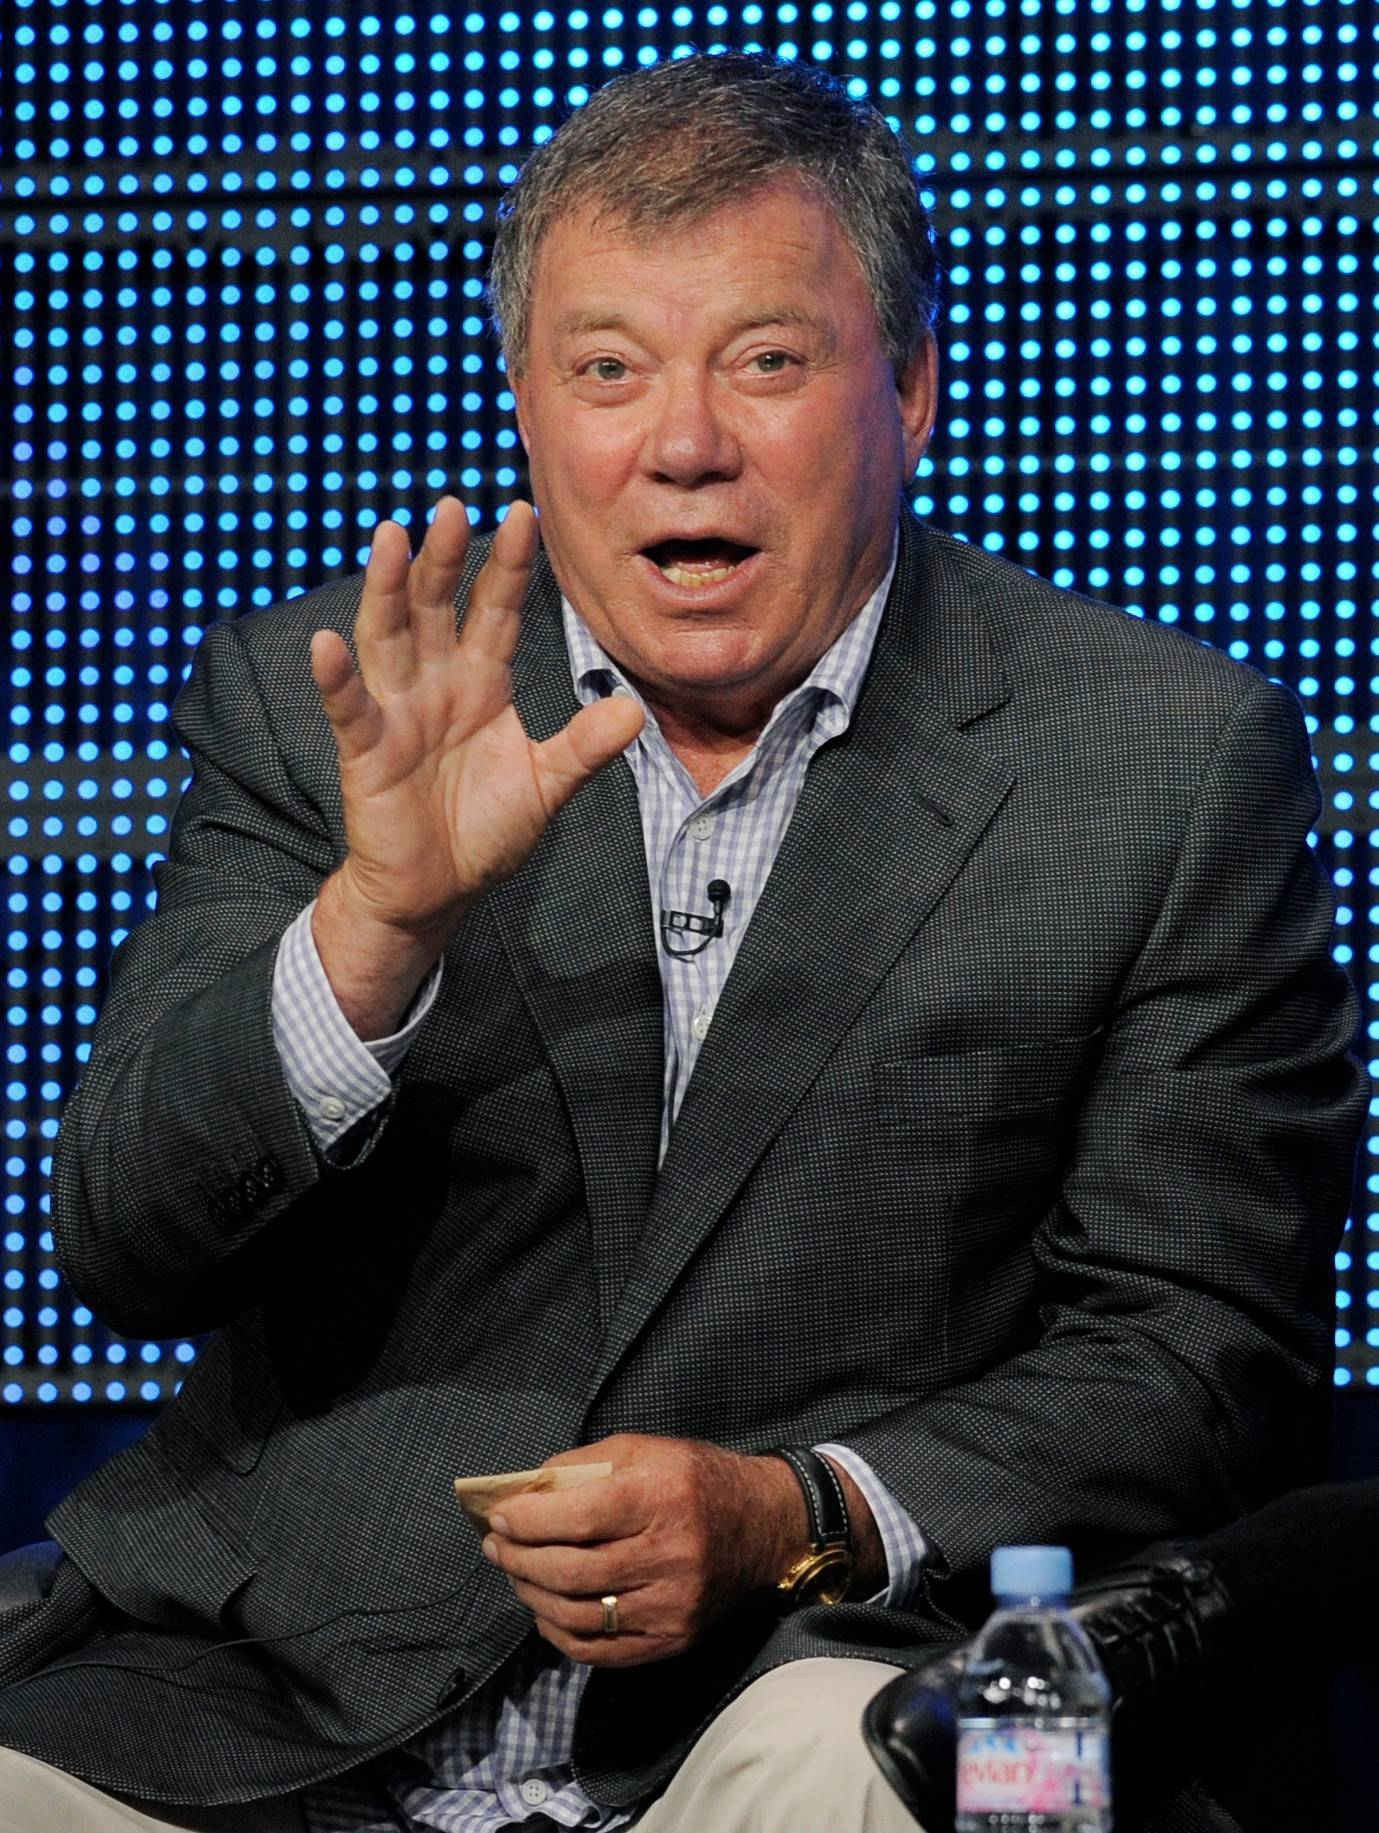 William Shatner will make an appearance at Creation Entertainment's Official Star Trek Convention at the Westin O'Hare in Rosemont.